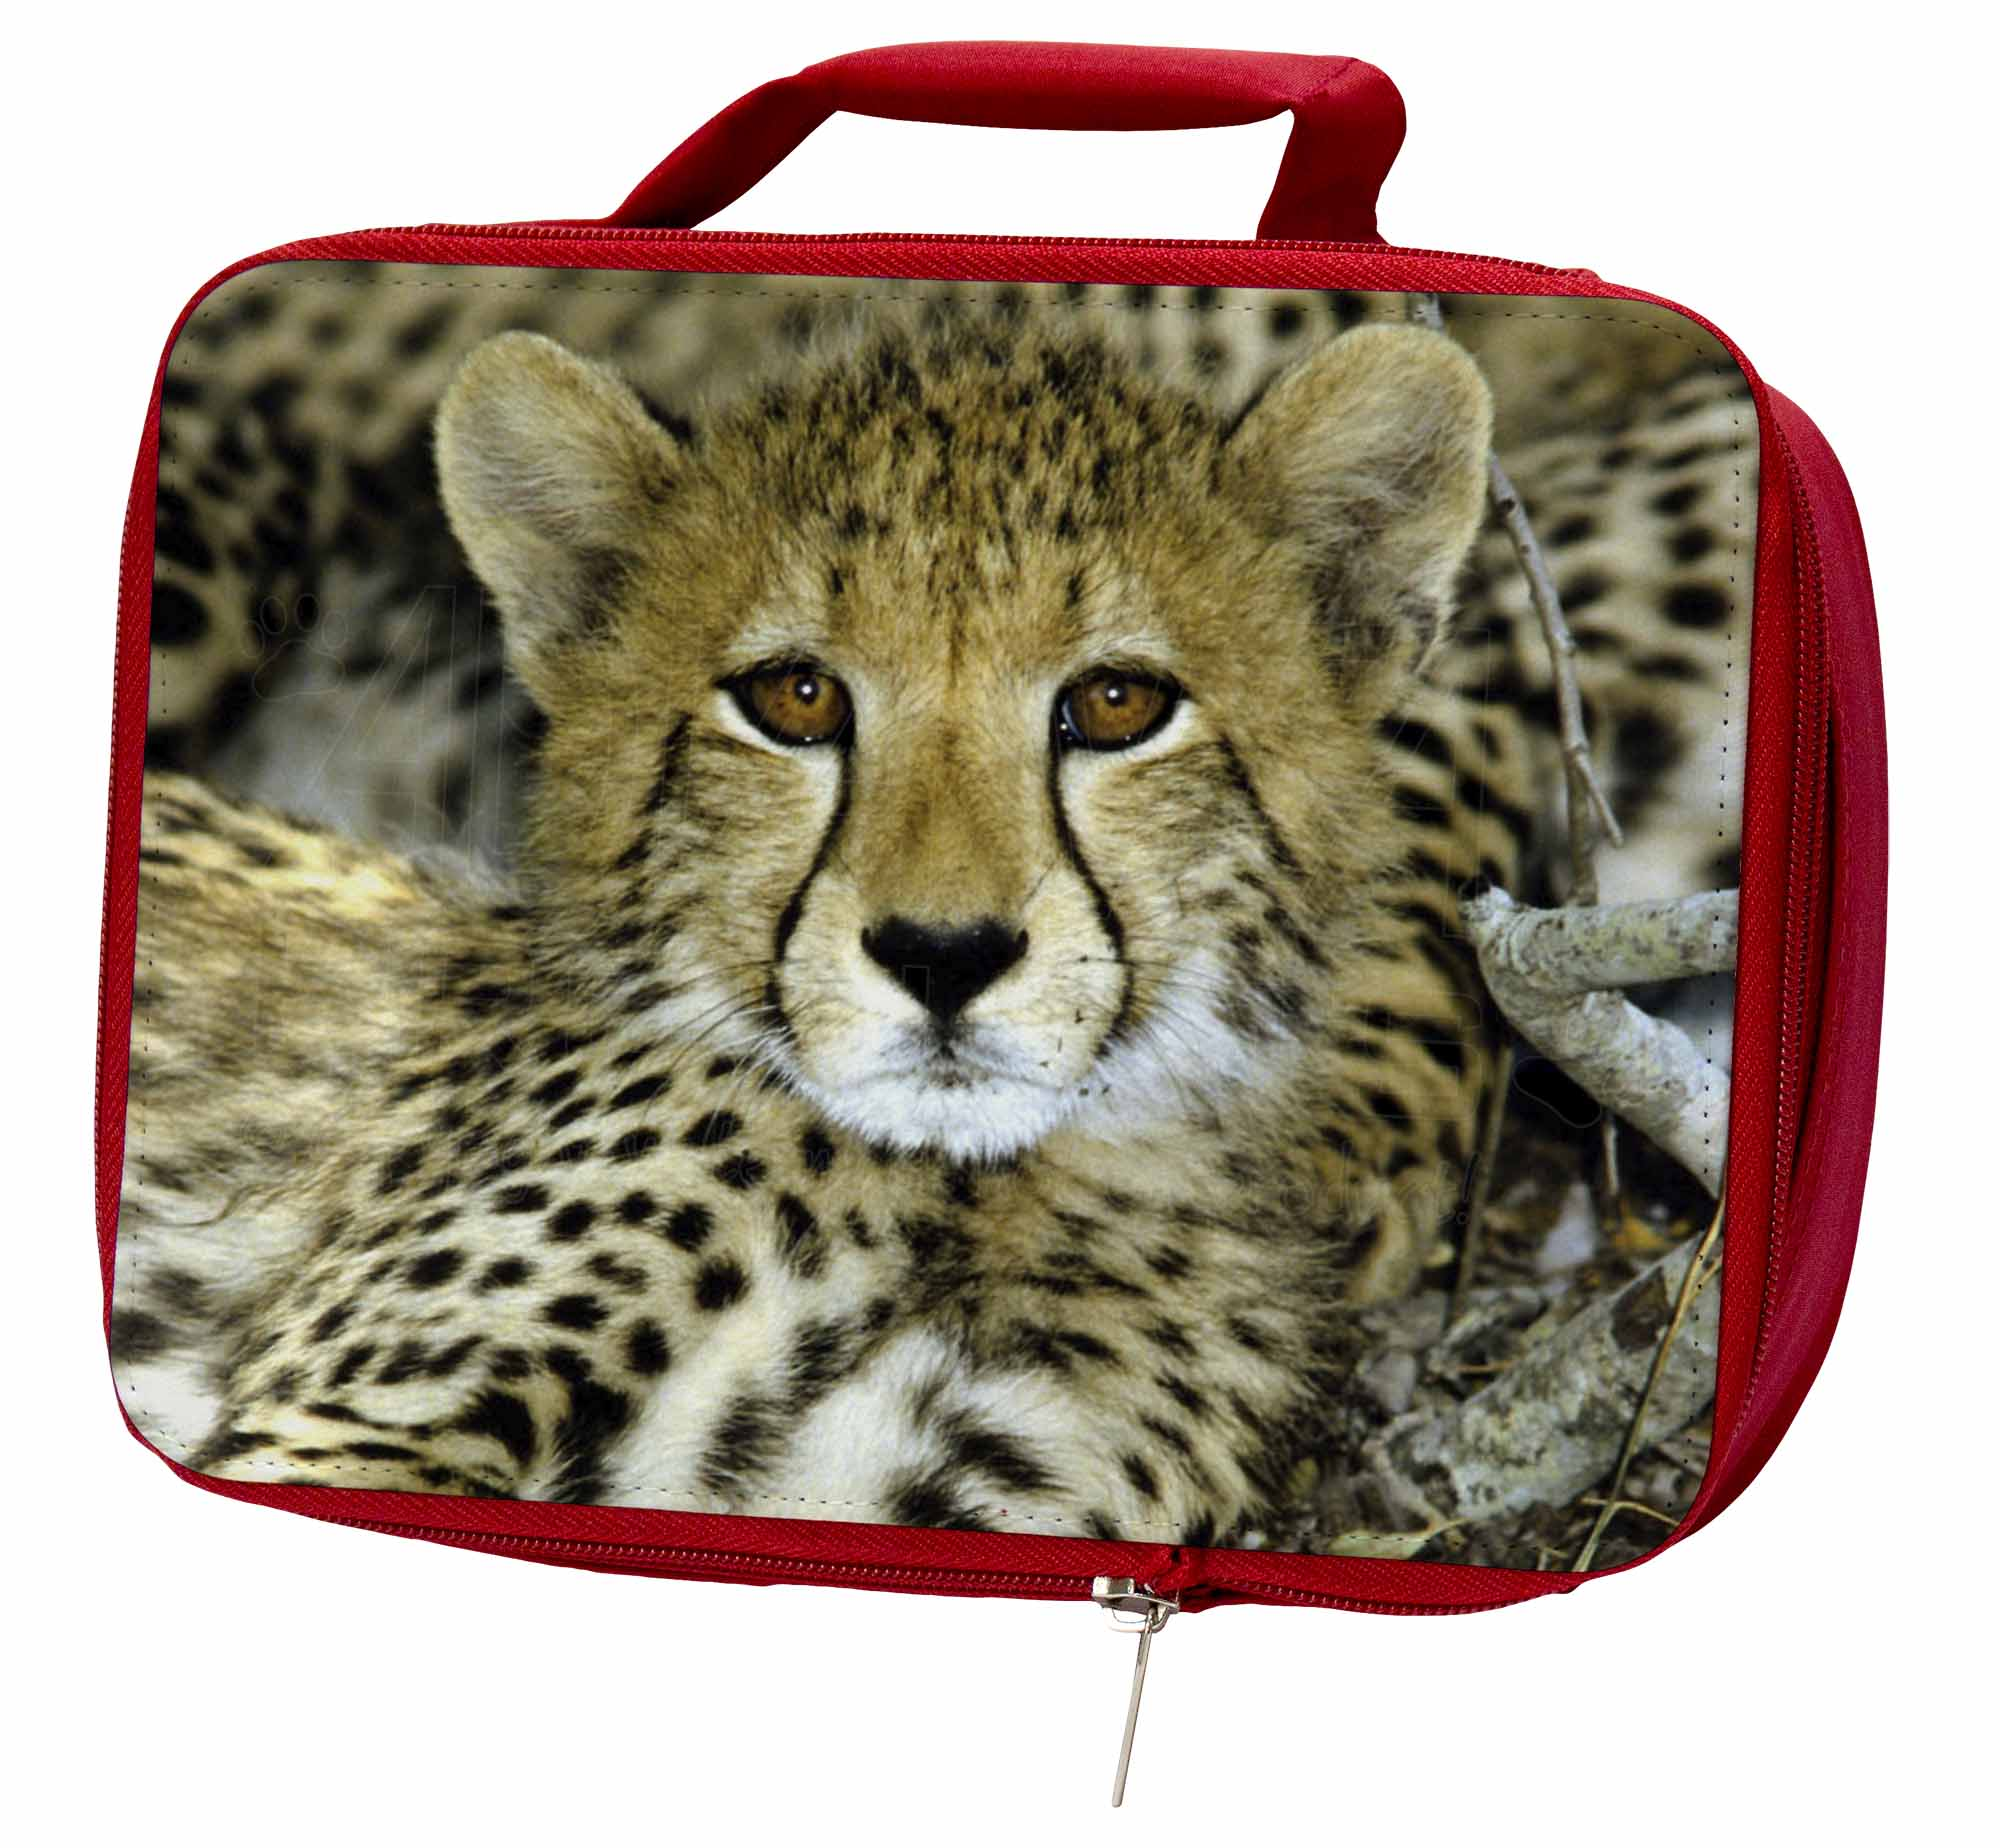 Baby Cheetah Insulated Red Box/Picnic School Lunch Box/Picnic Red Bag, AT-18LBR 87eb02